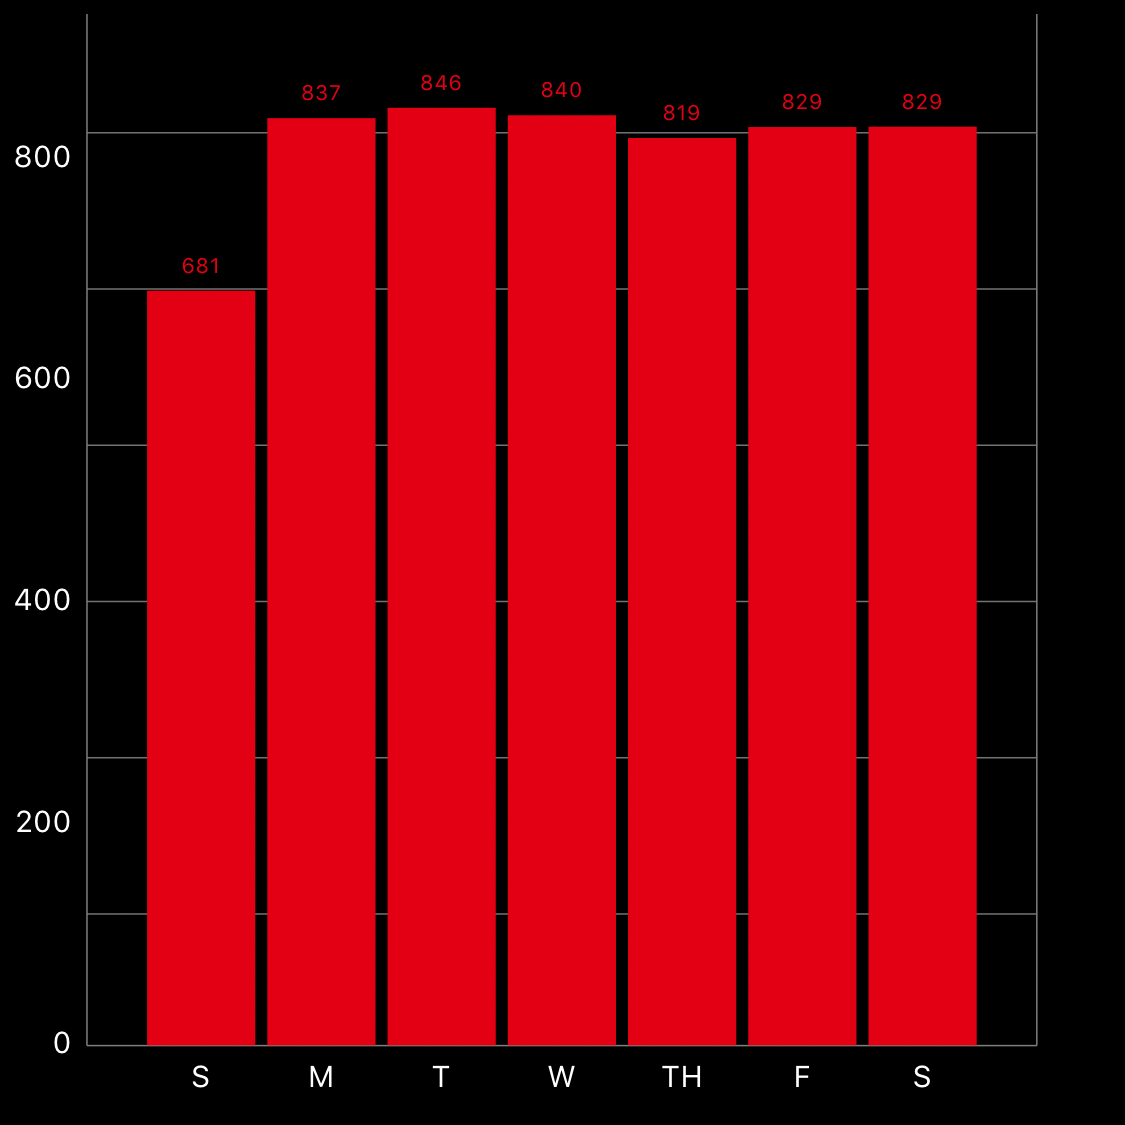 Activity chart data average throughout the week